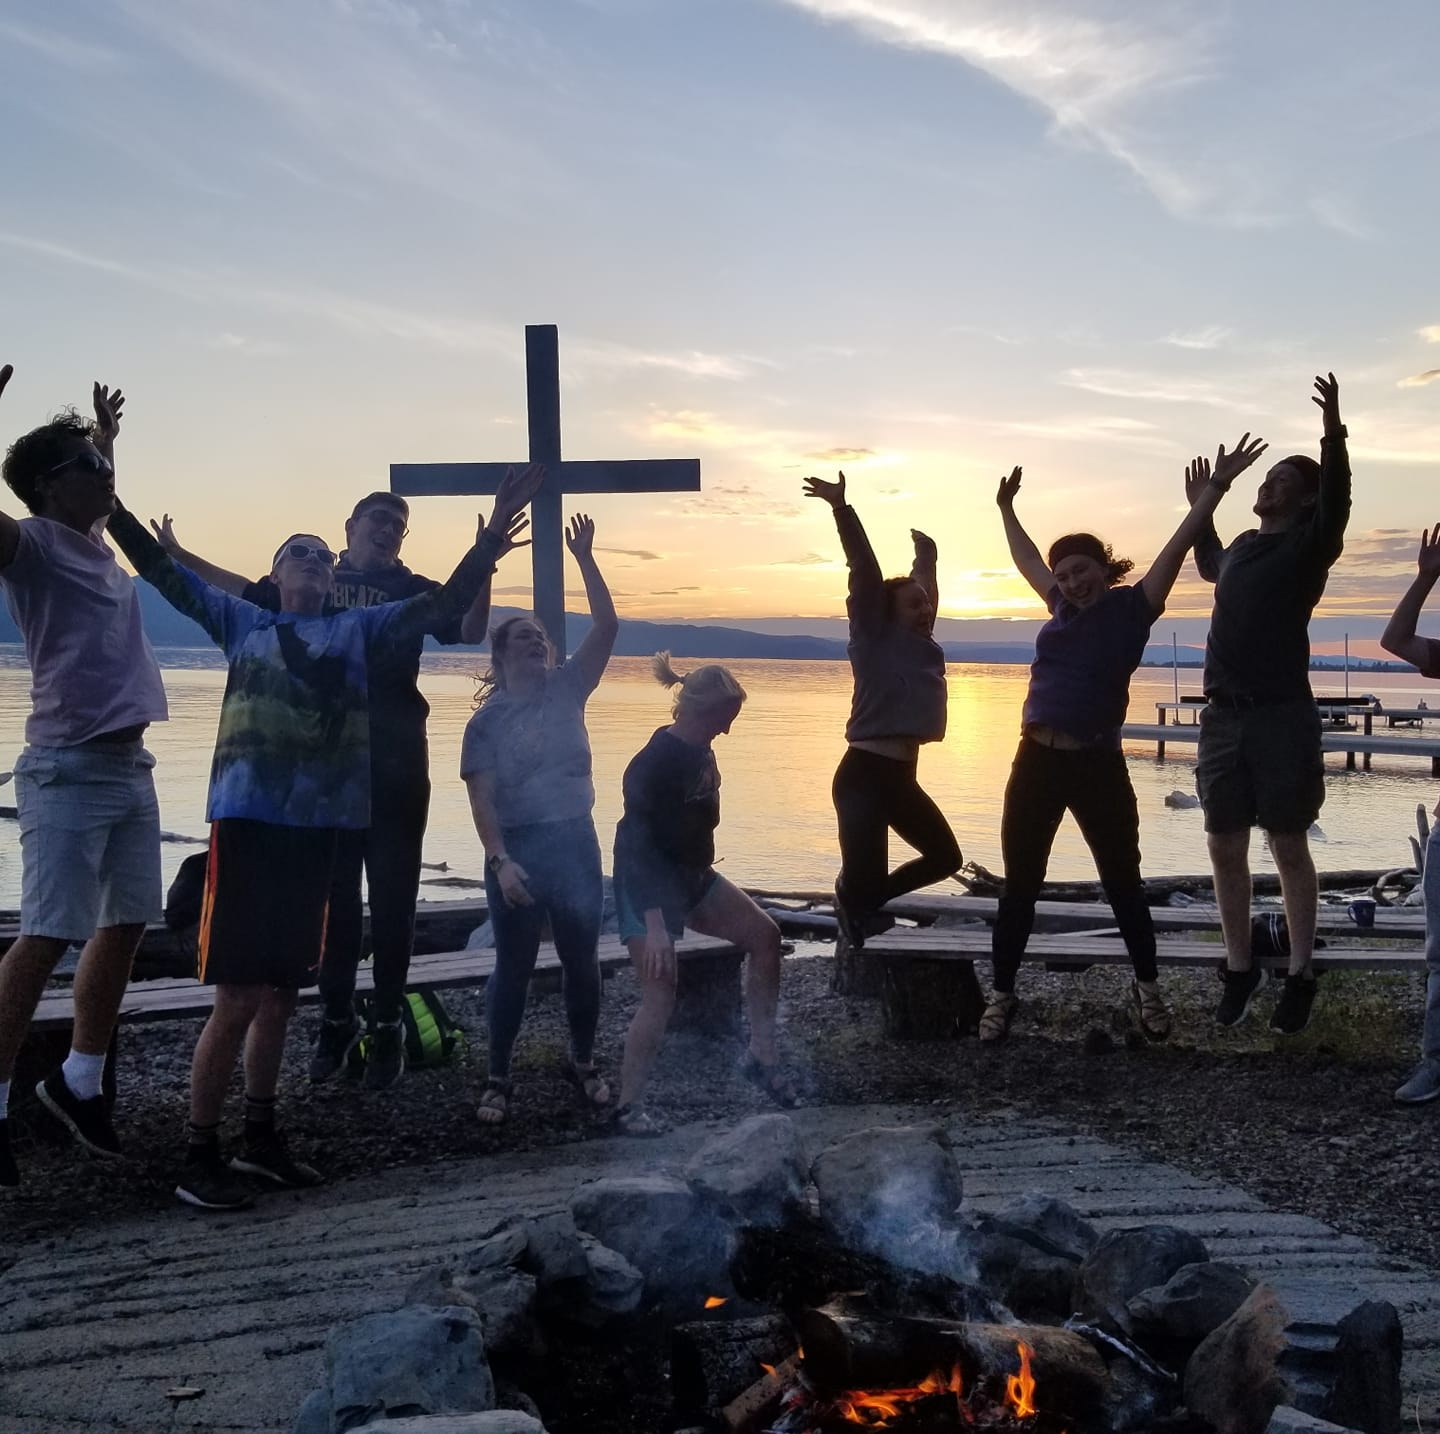 Join us for our Retreats!!! - Click on dates for more info or to registerMiddle School Retreat - April 26-27, 2019High School Retreat - May 3-5, 2019Songwriting Retreat - June 2-5, 2019Family Camp Weekend - July 5-7, 2019Songwriting Retreat - August 28-31, 2019More Retreats Coming Soon for Men, Women, Parents, Married Couples, etc.